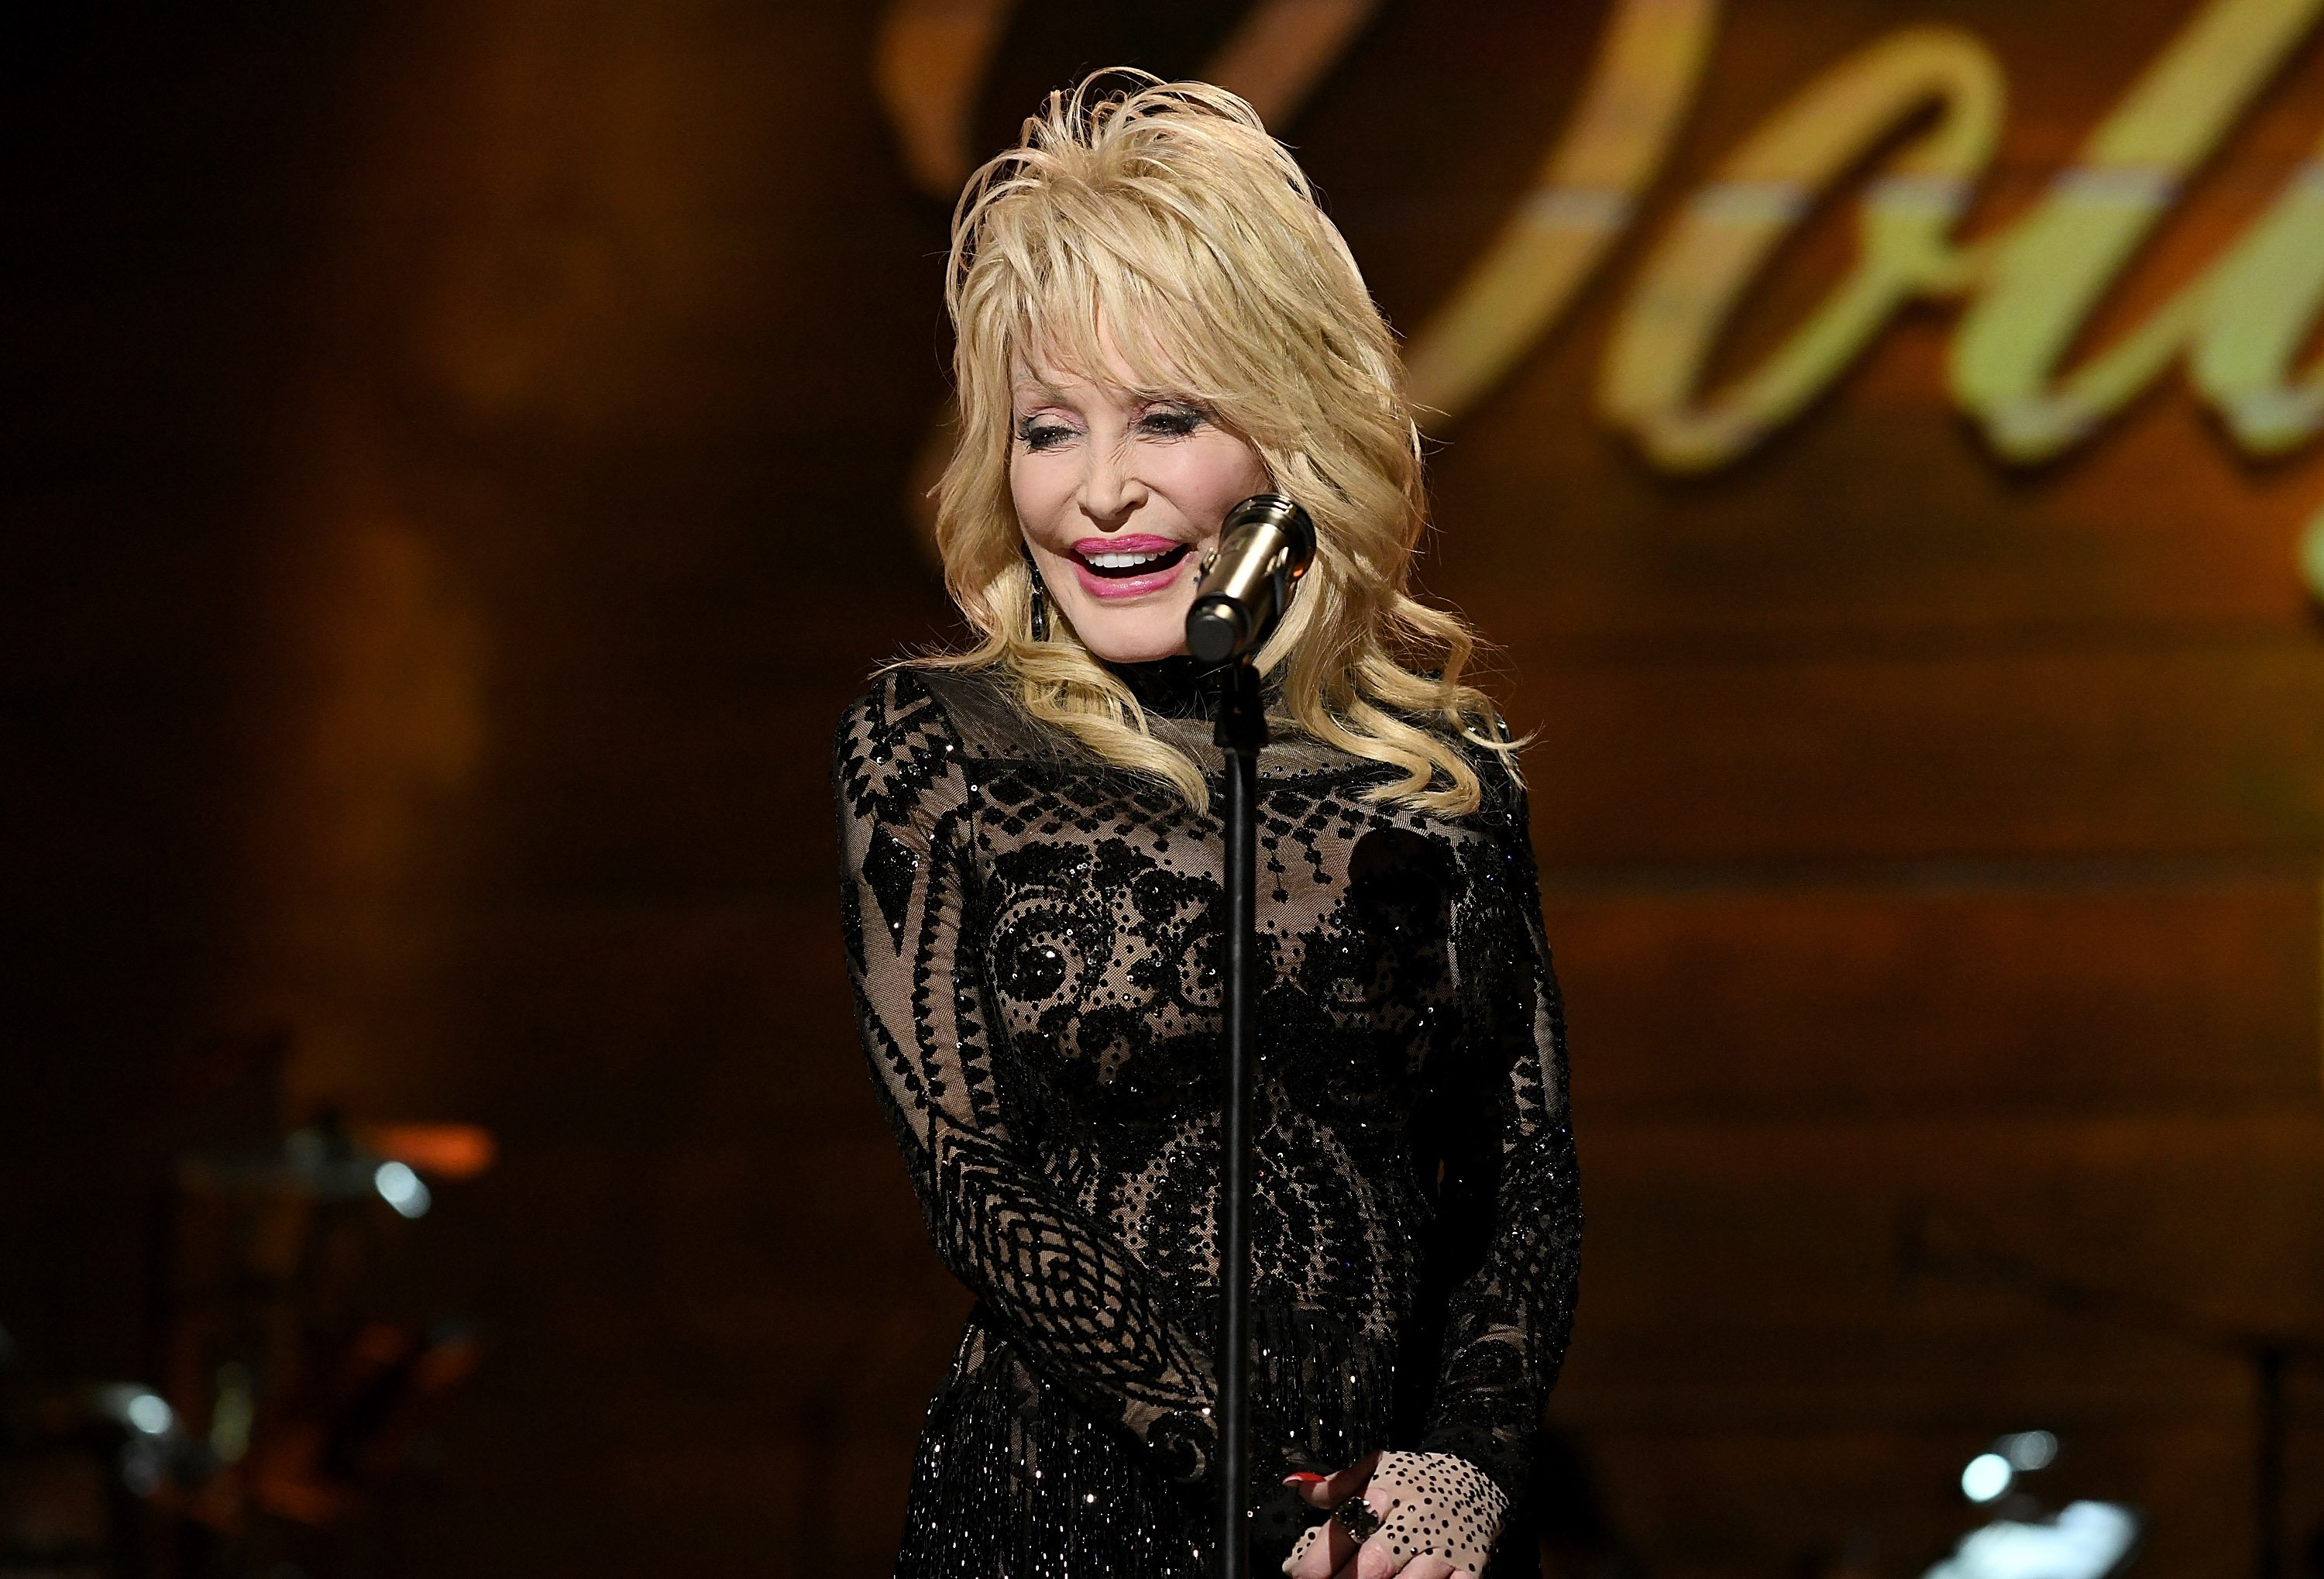 Dolly Parton at the MusiCares Person of the Year honoring Dolly Parton at Los Angeles Convention Center on February 8, 2019 | Image Source: Getty Images